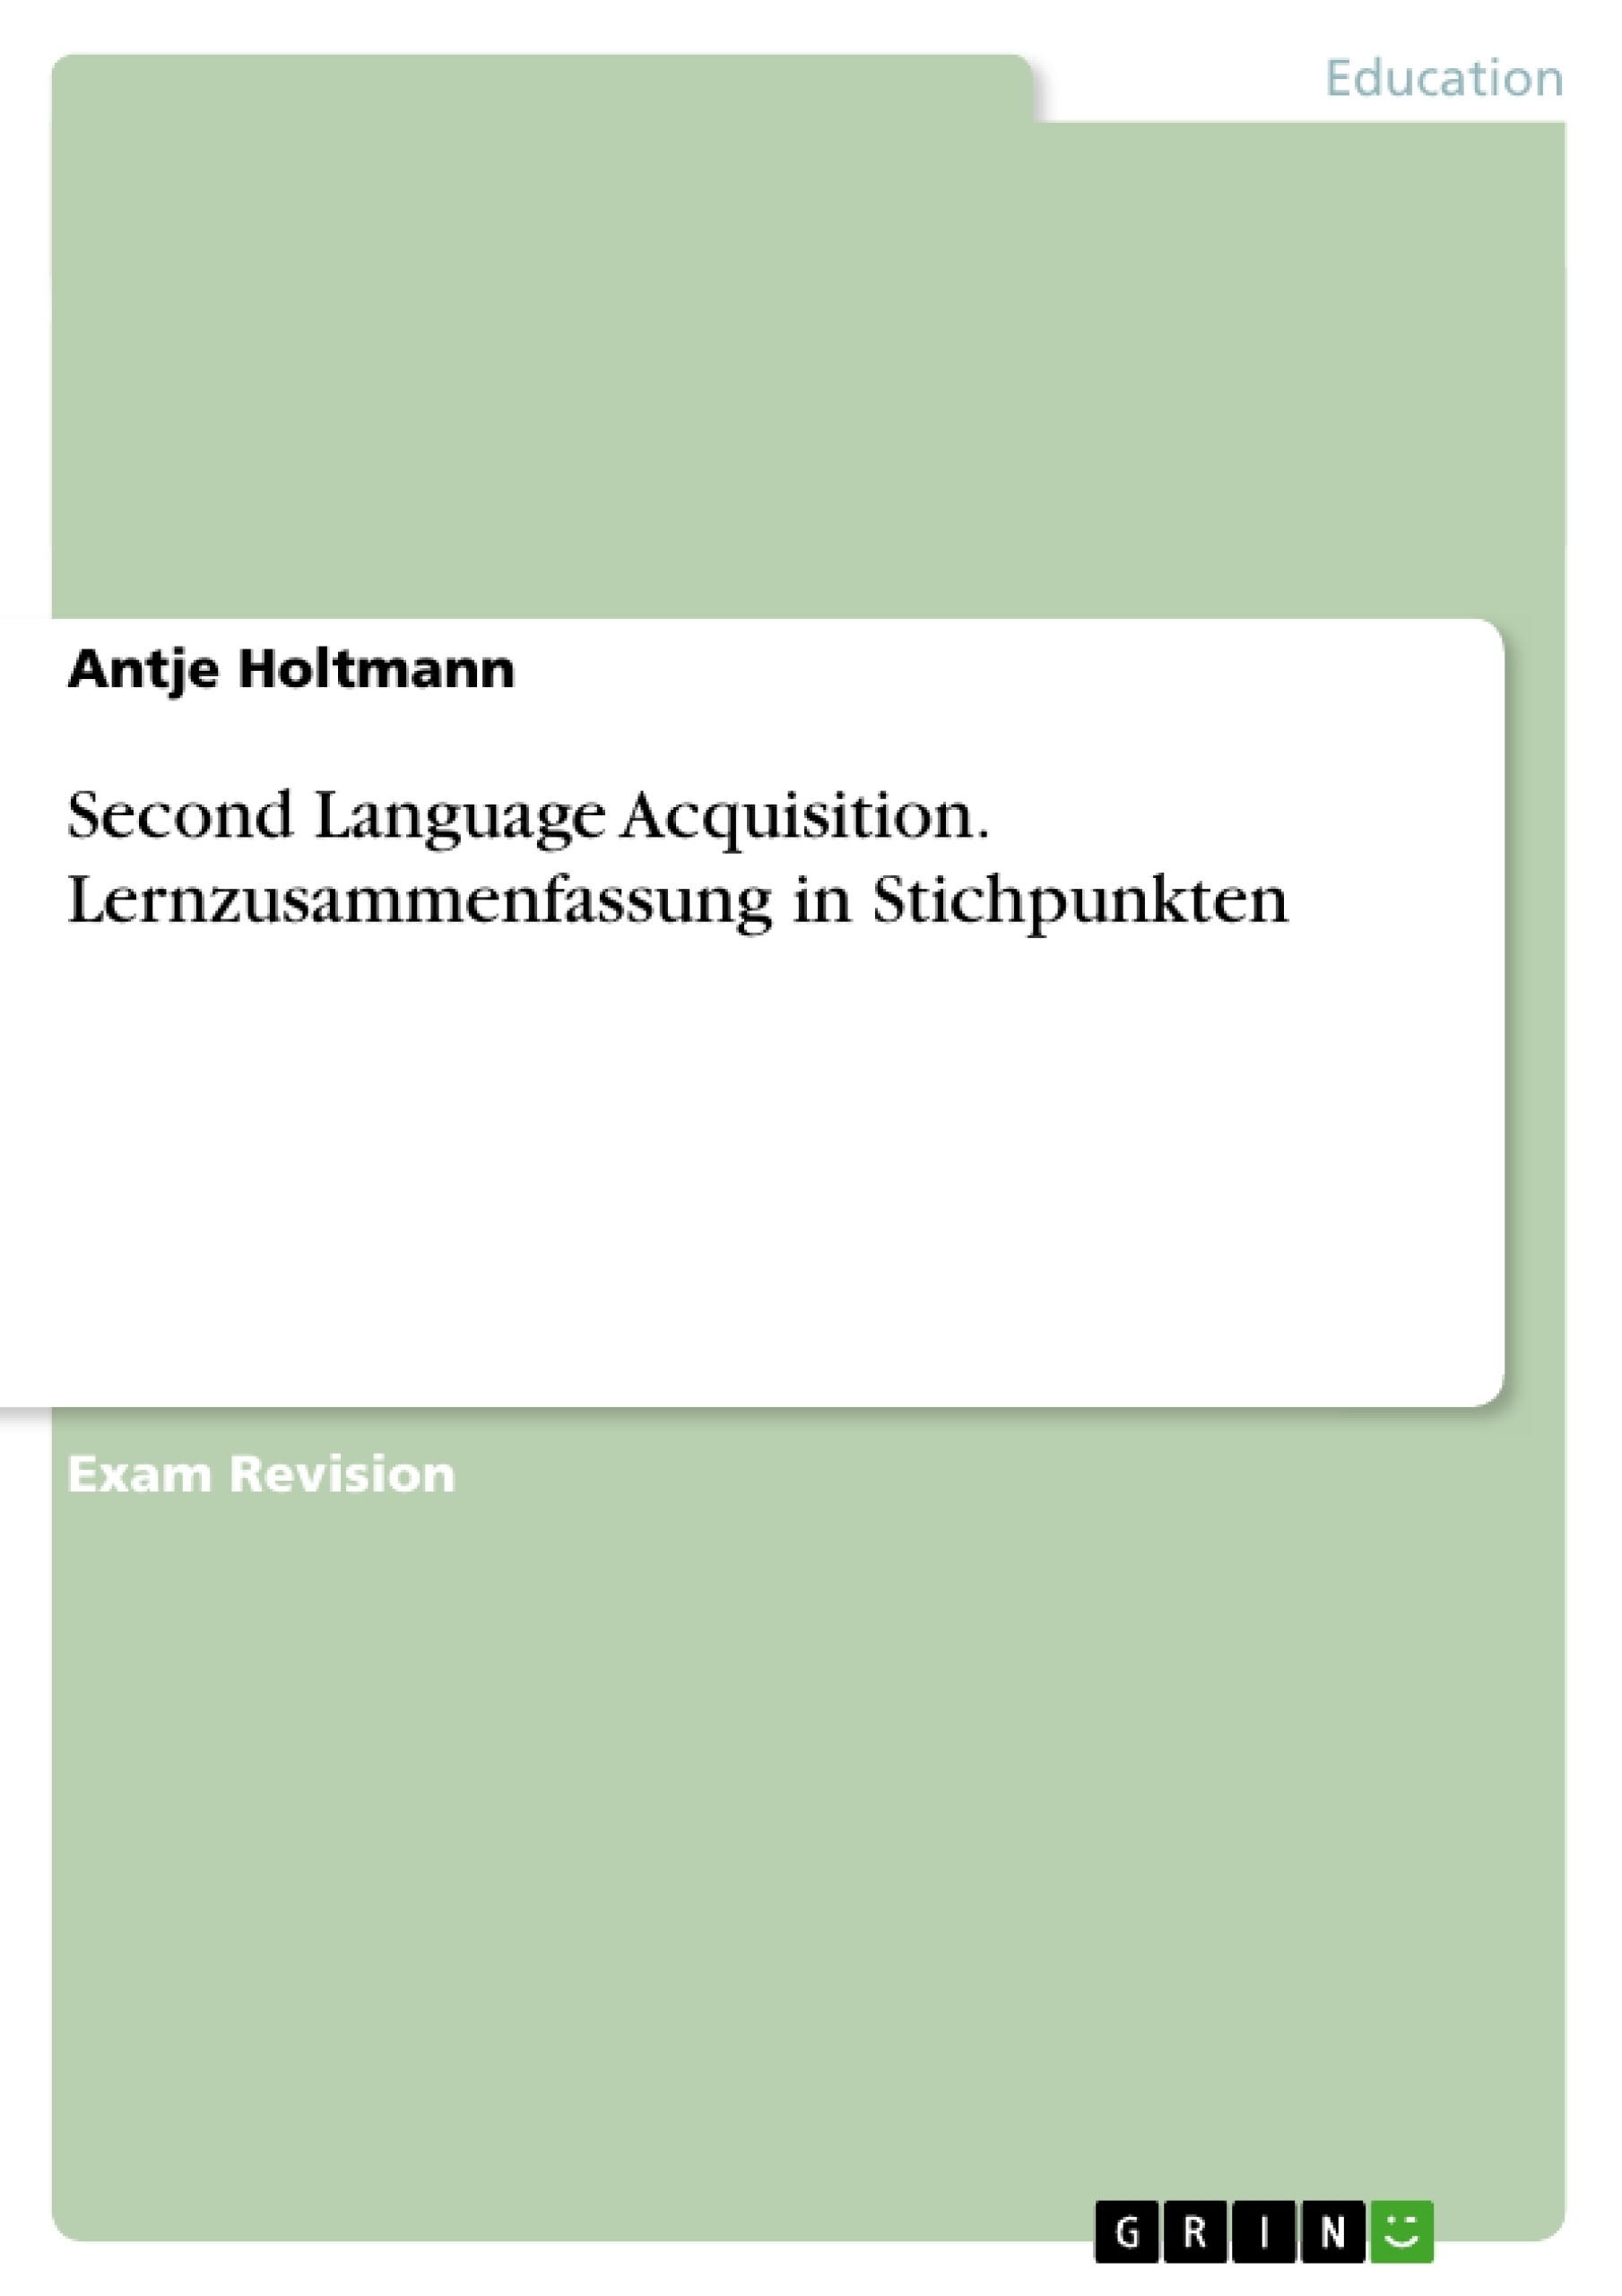 Title: Second Language Acquisition. Lernzusammenfassung in Stichpunkten